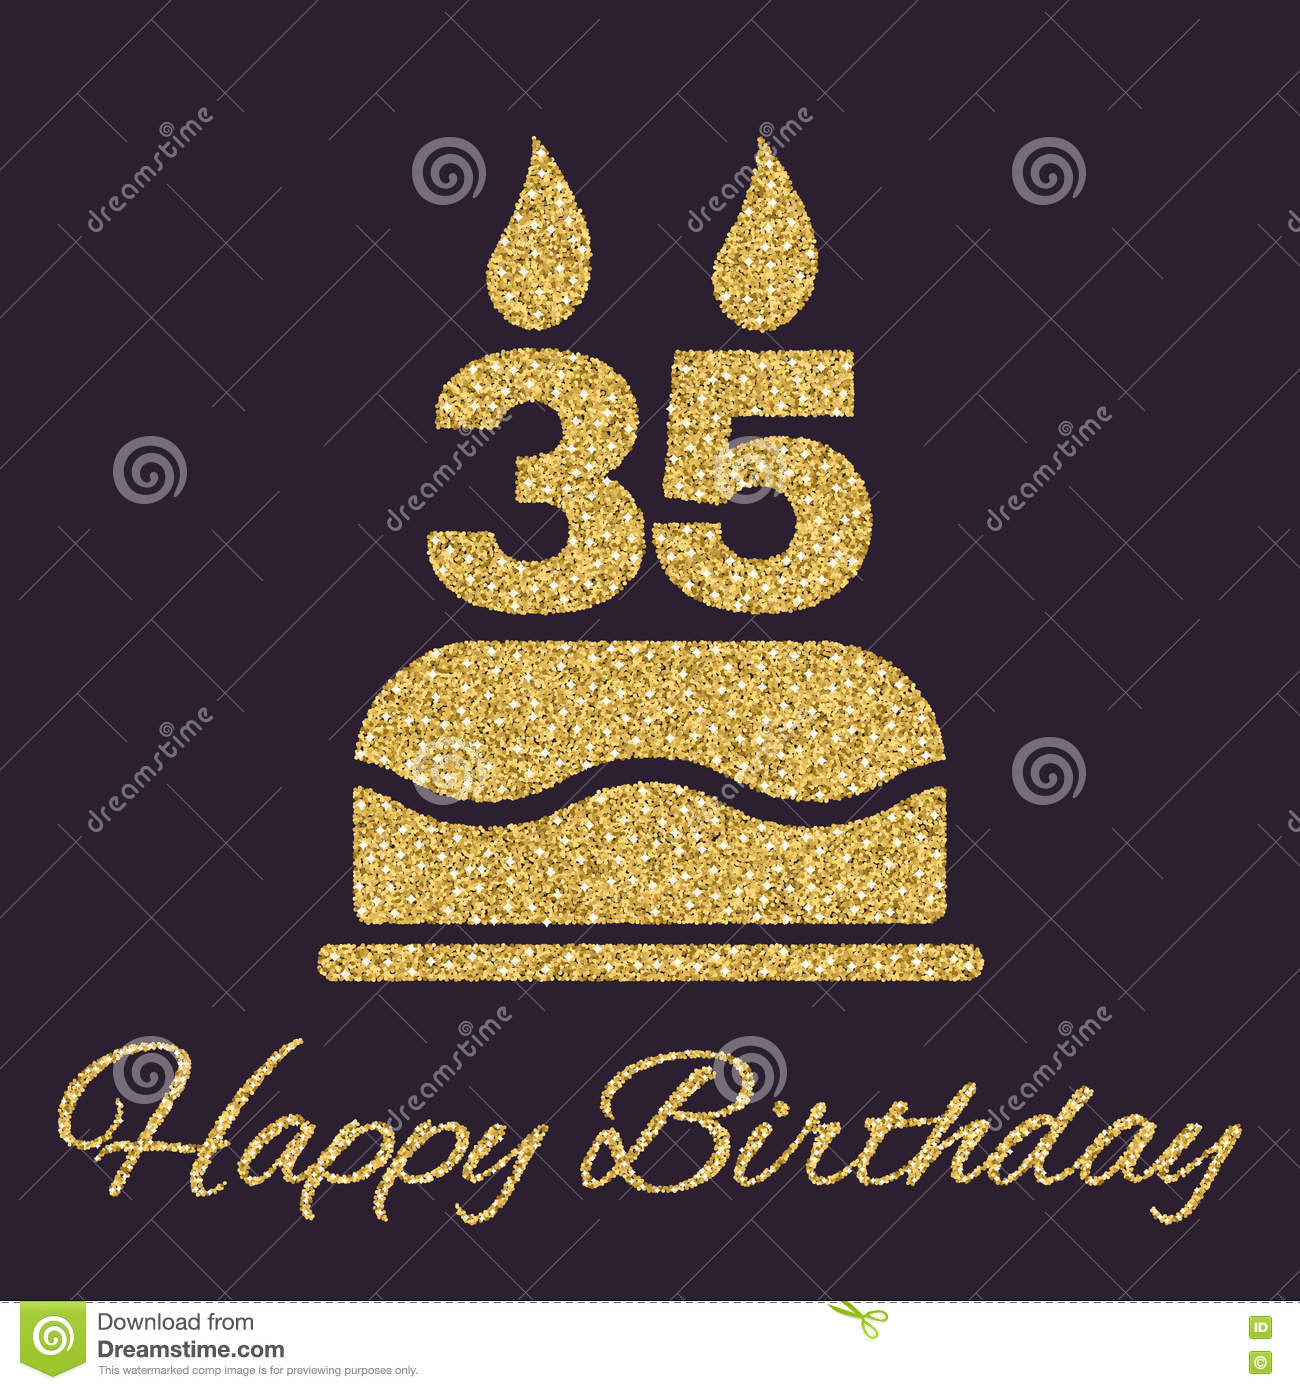 The Birthday Cake With Candles In Form Of Number 35 Icon Symbol Gold Sparkles And Glitter Vector Illustration